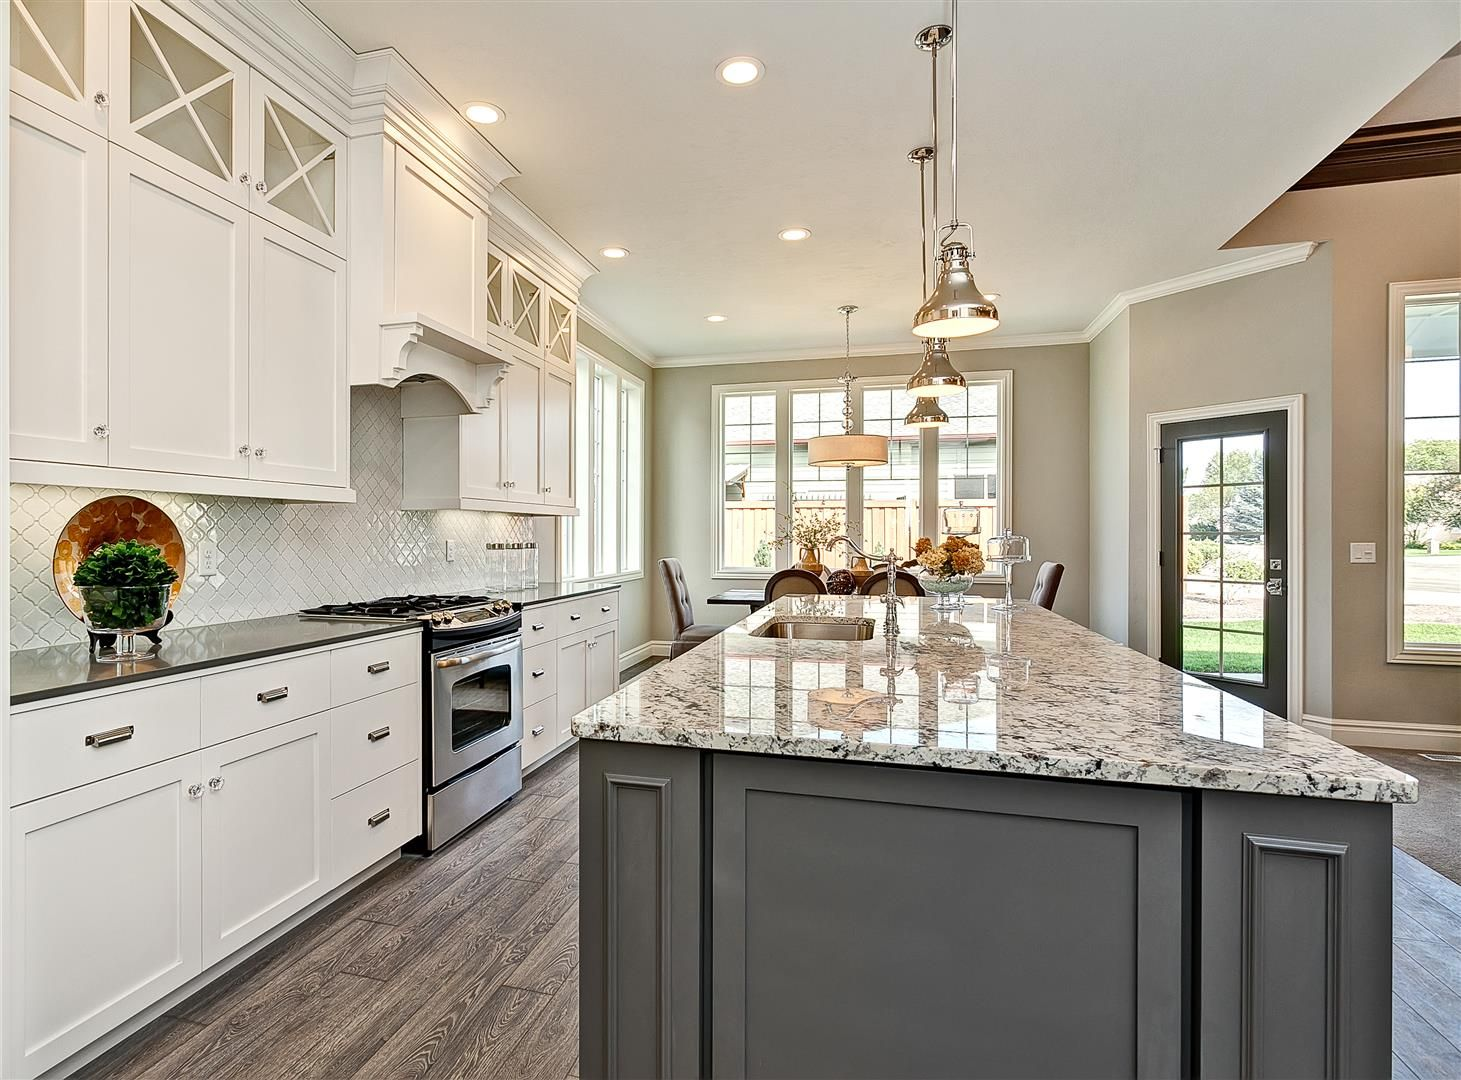 White Kitchen Cabinetry With Grey Accent Island Chrome Hardware Accents With Qua Grey Kitchen Cabinets Light Grey Kitchen Cabinets Granite Countertops Kitchen